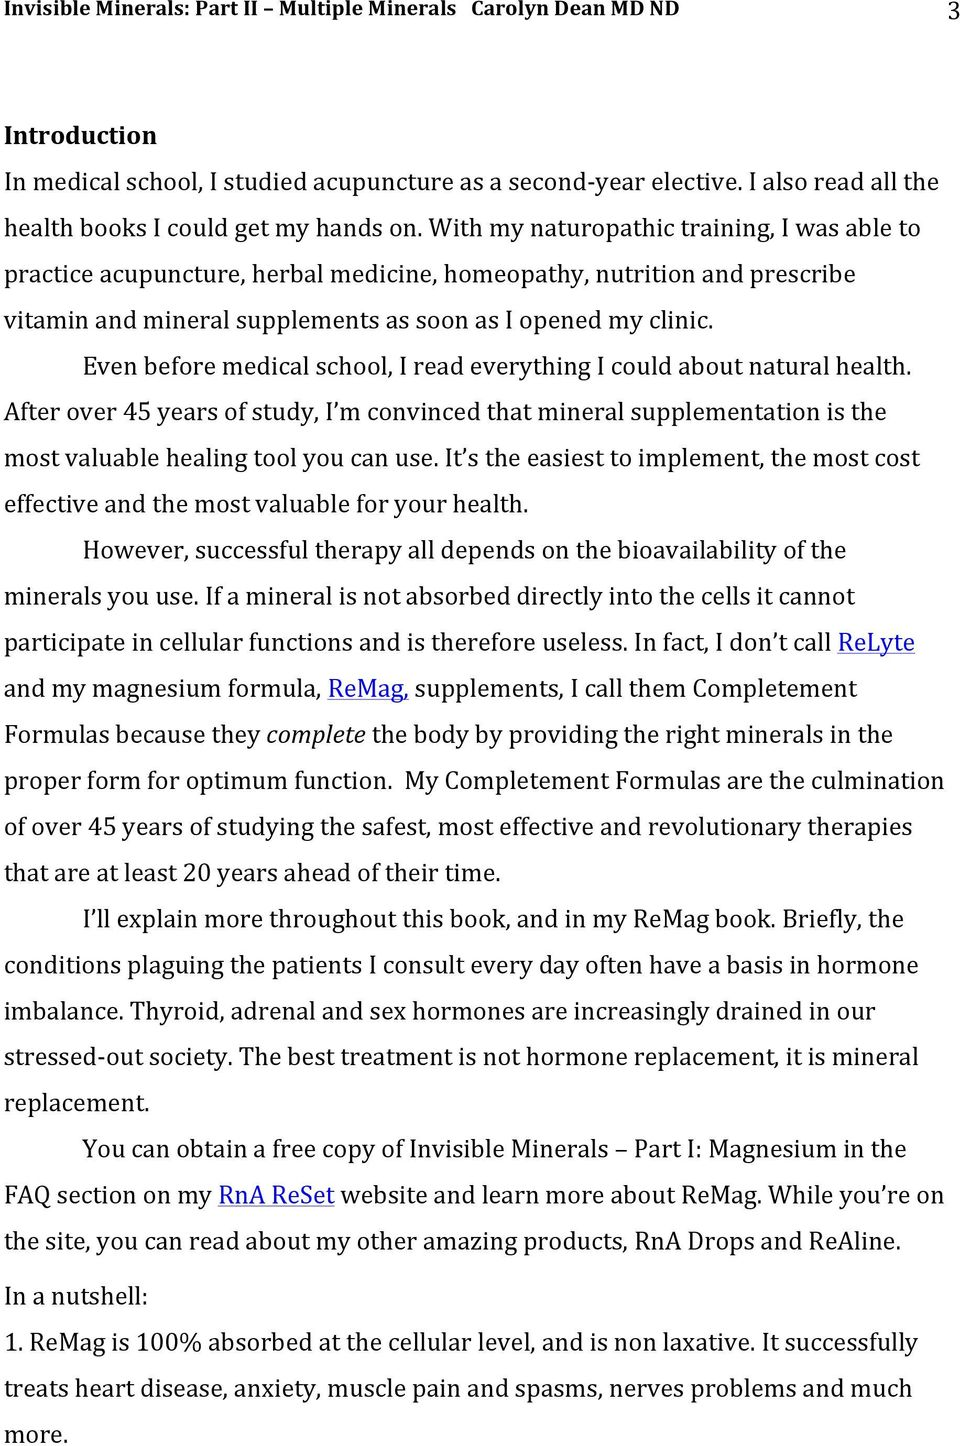 Even before medical school, I read everything I could about natural health. After over 45 years of study, I m convinced that mineral supplementation is the most valuable healing tool you can use.